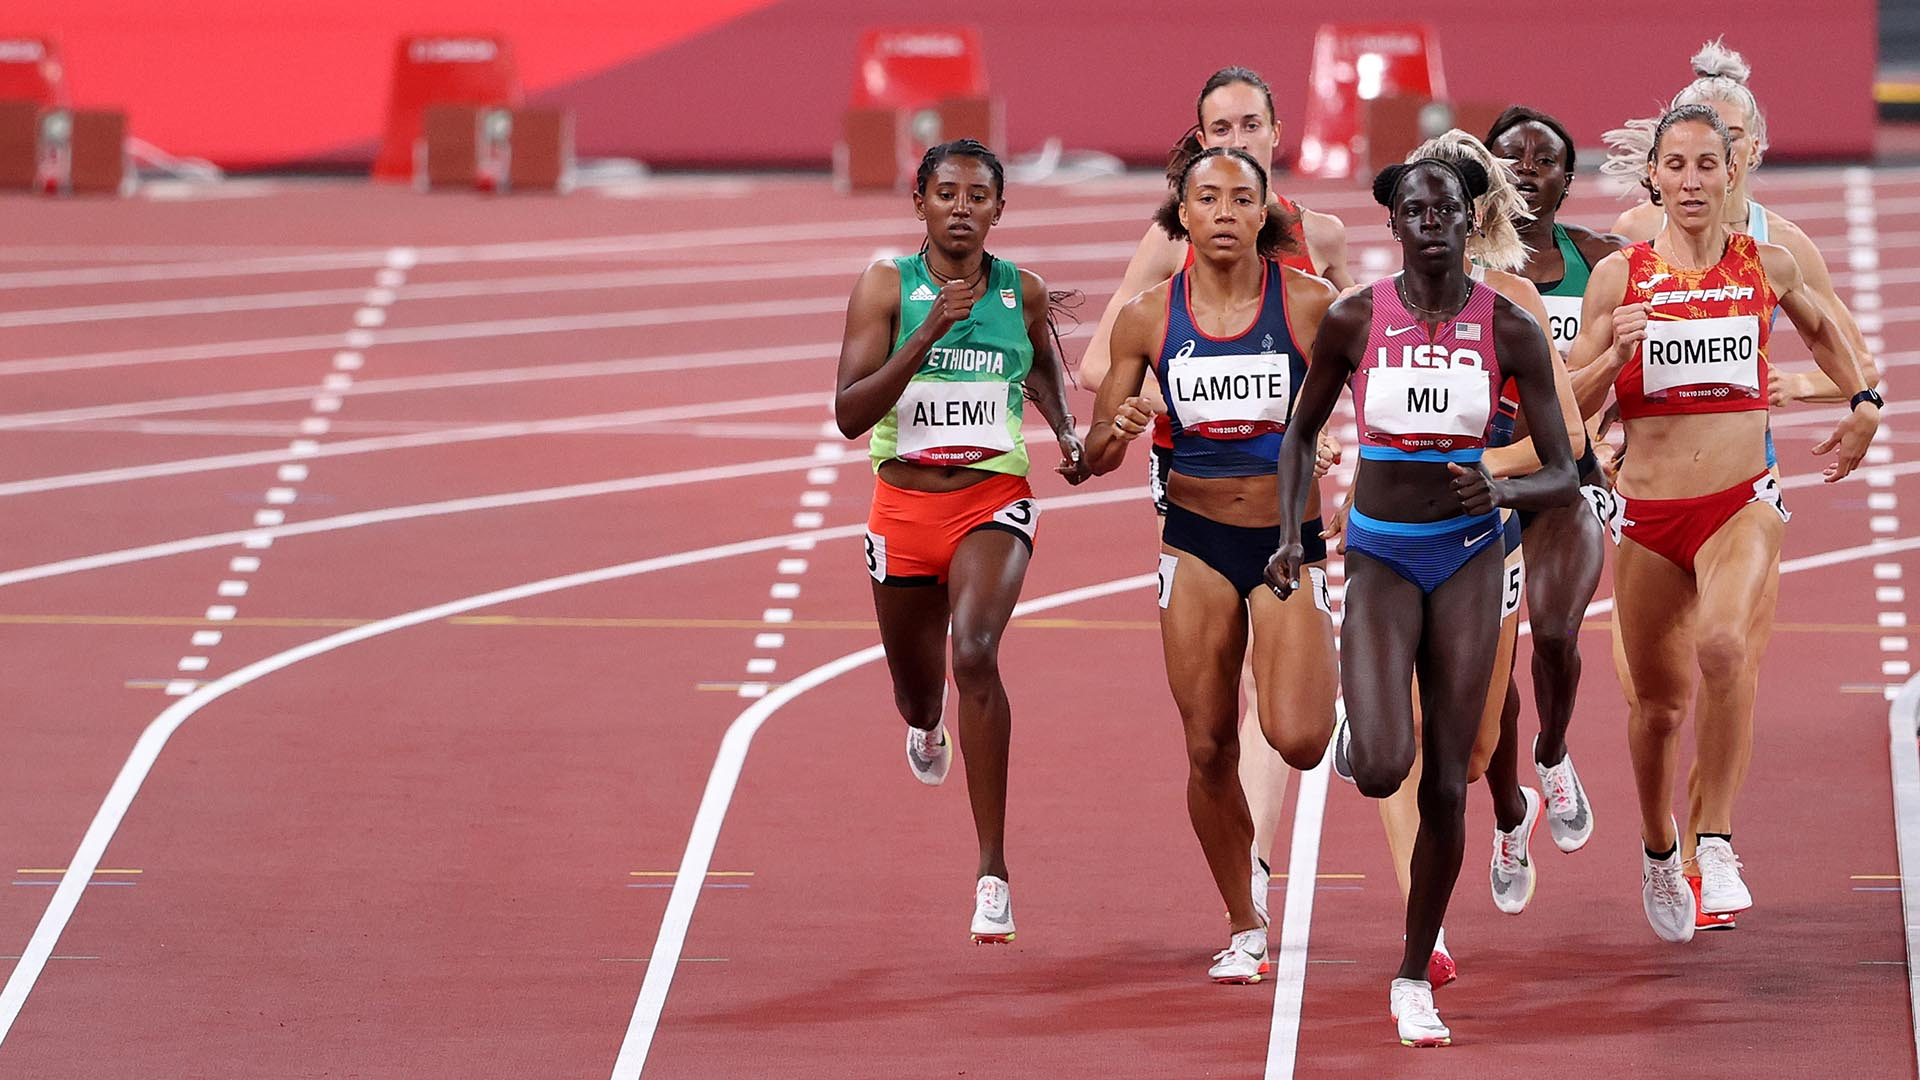 America's Mu Through to 800m Final, Keeping Alive Quest for Gold